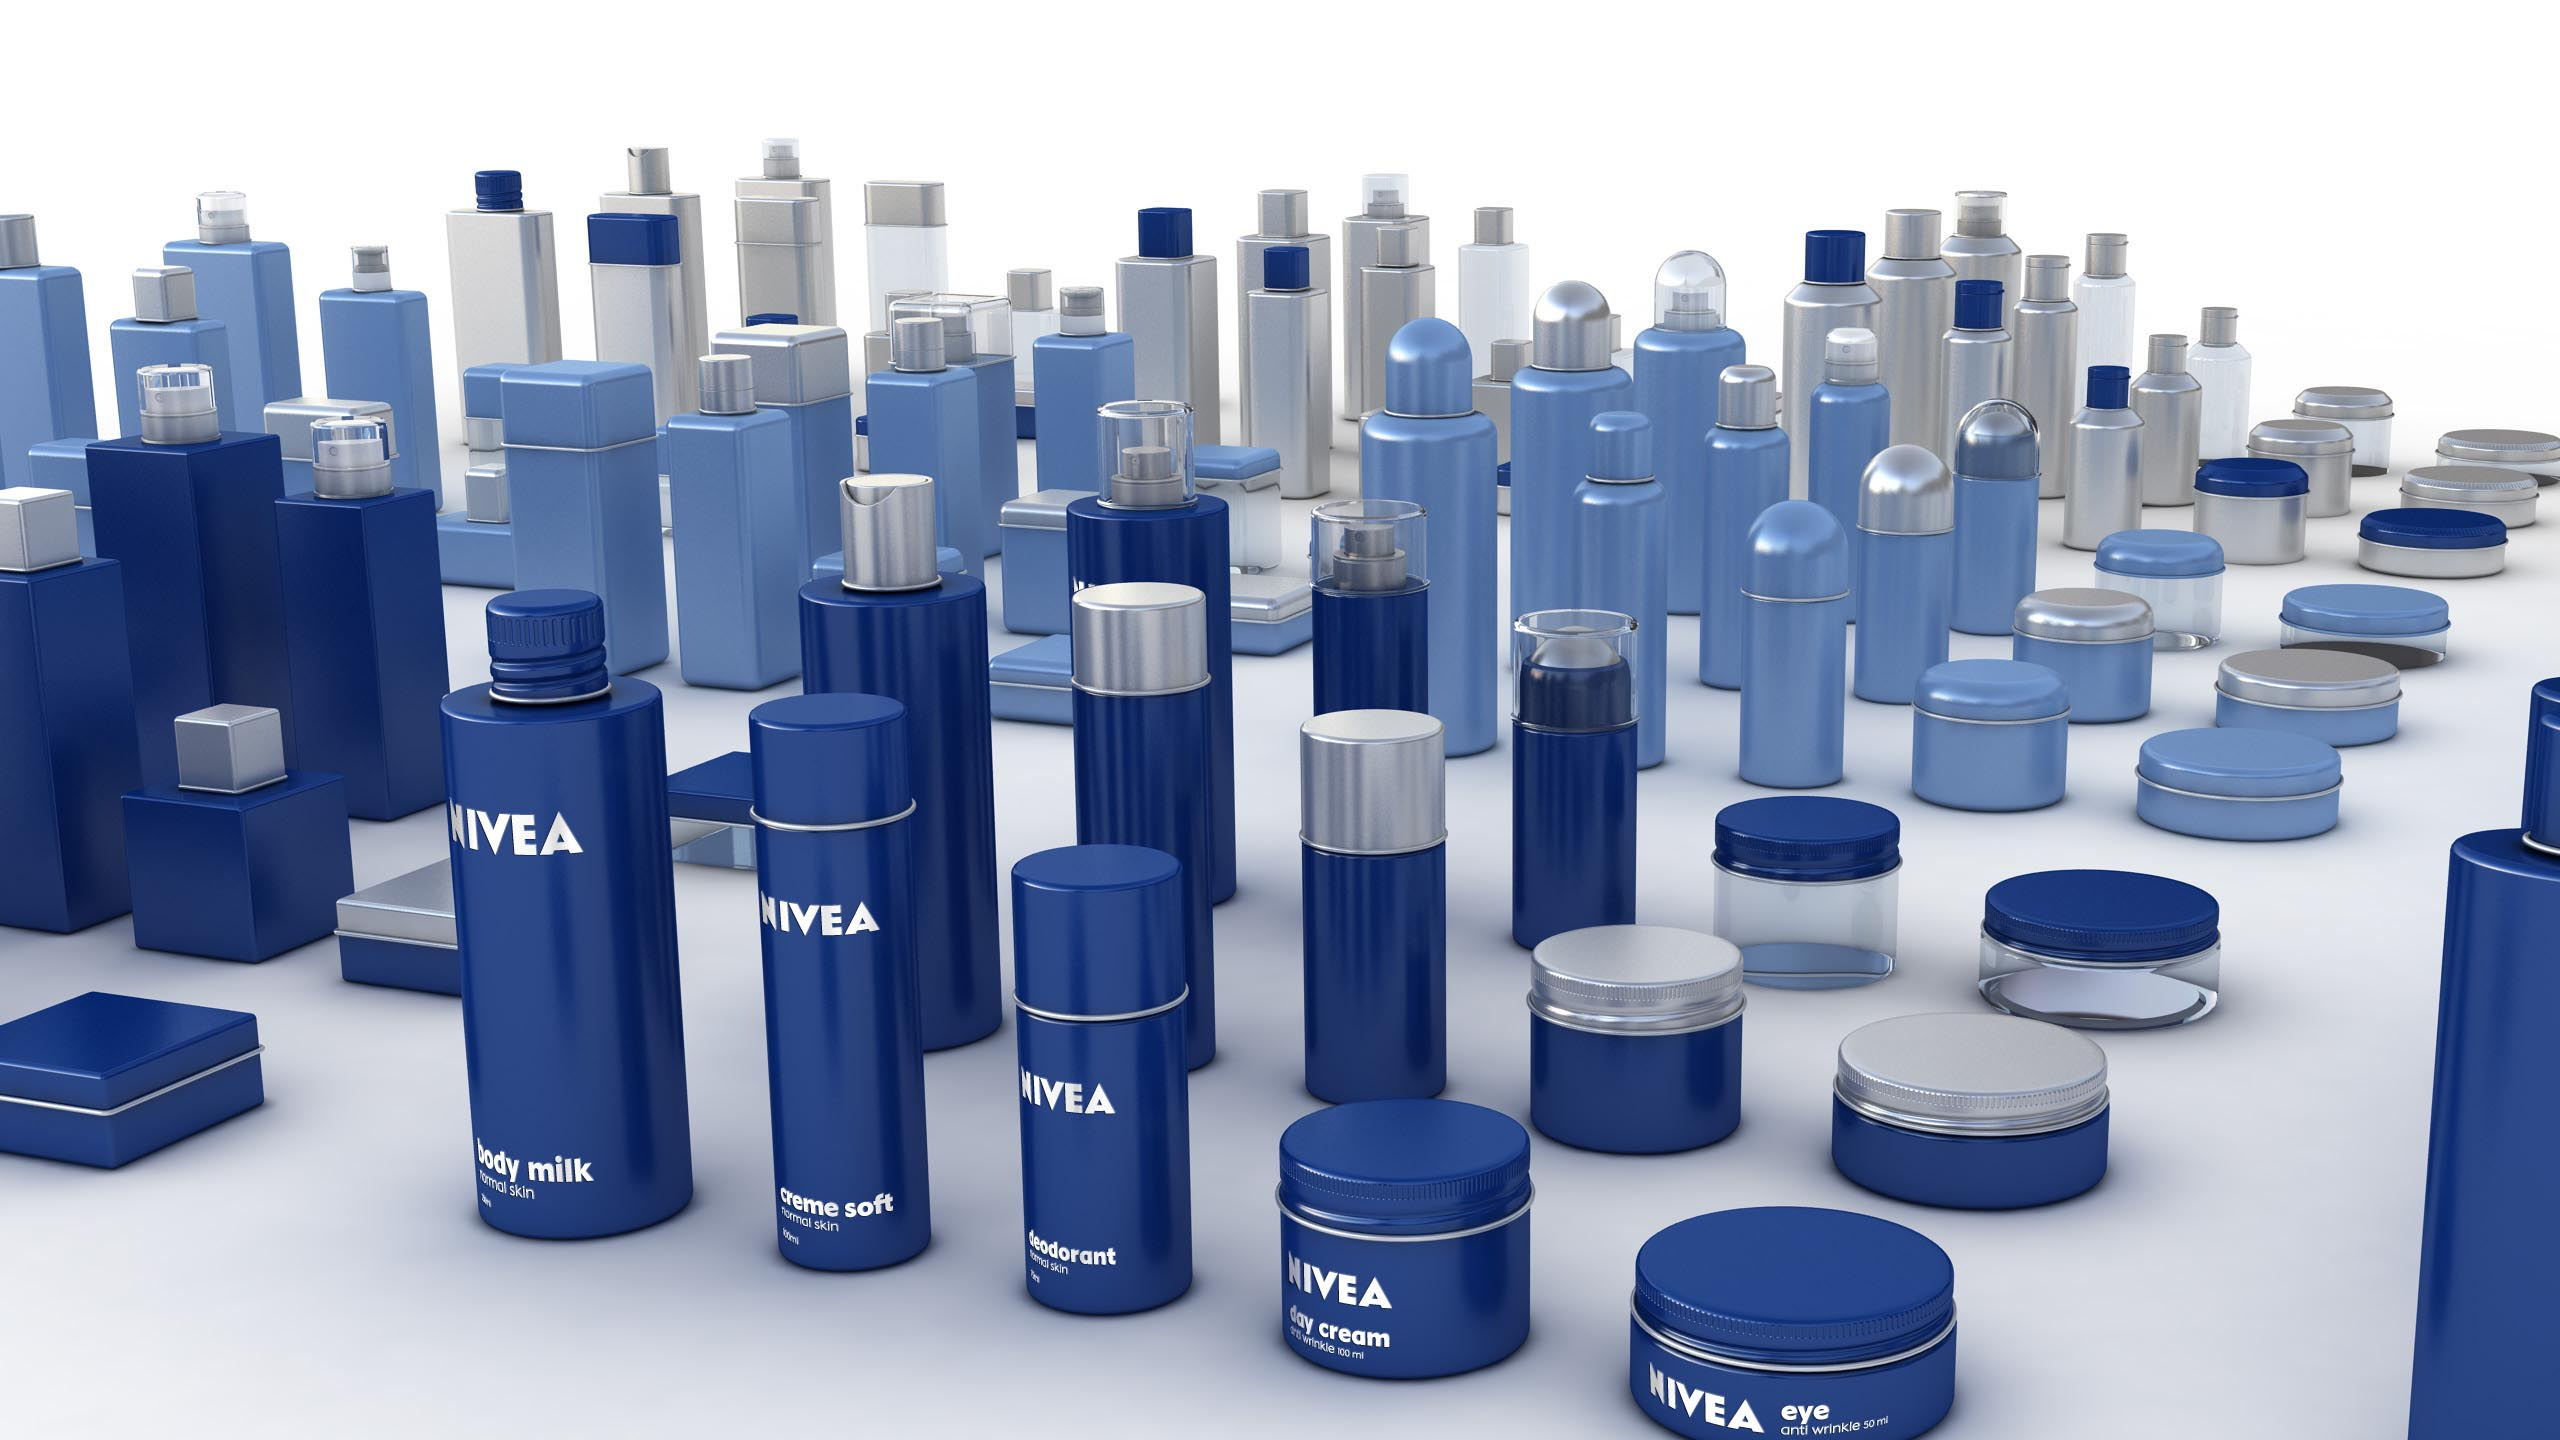 re-branding Nivea product architecture